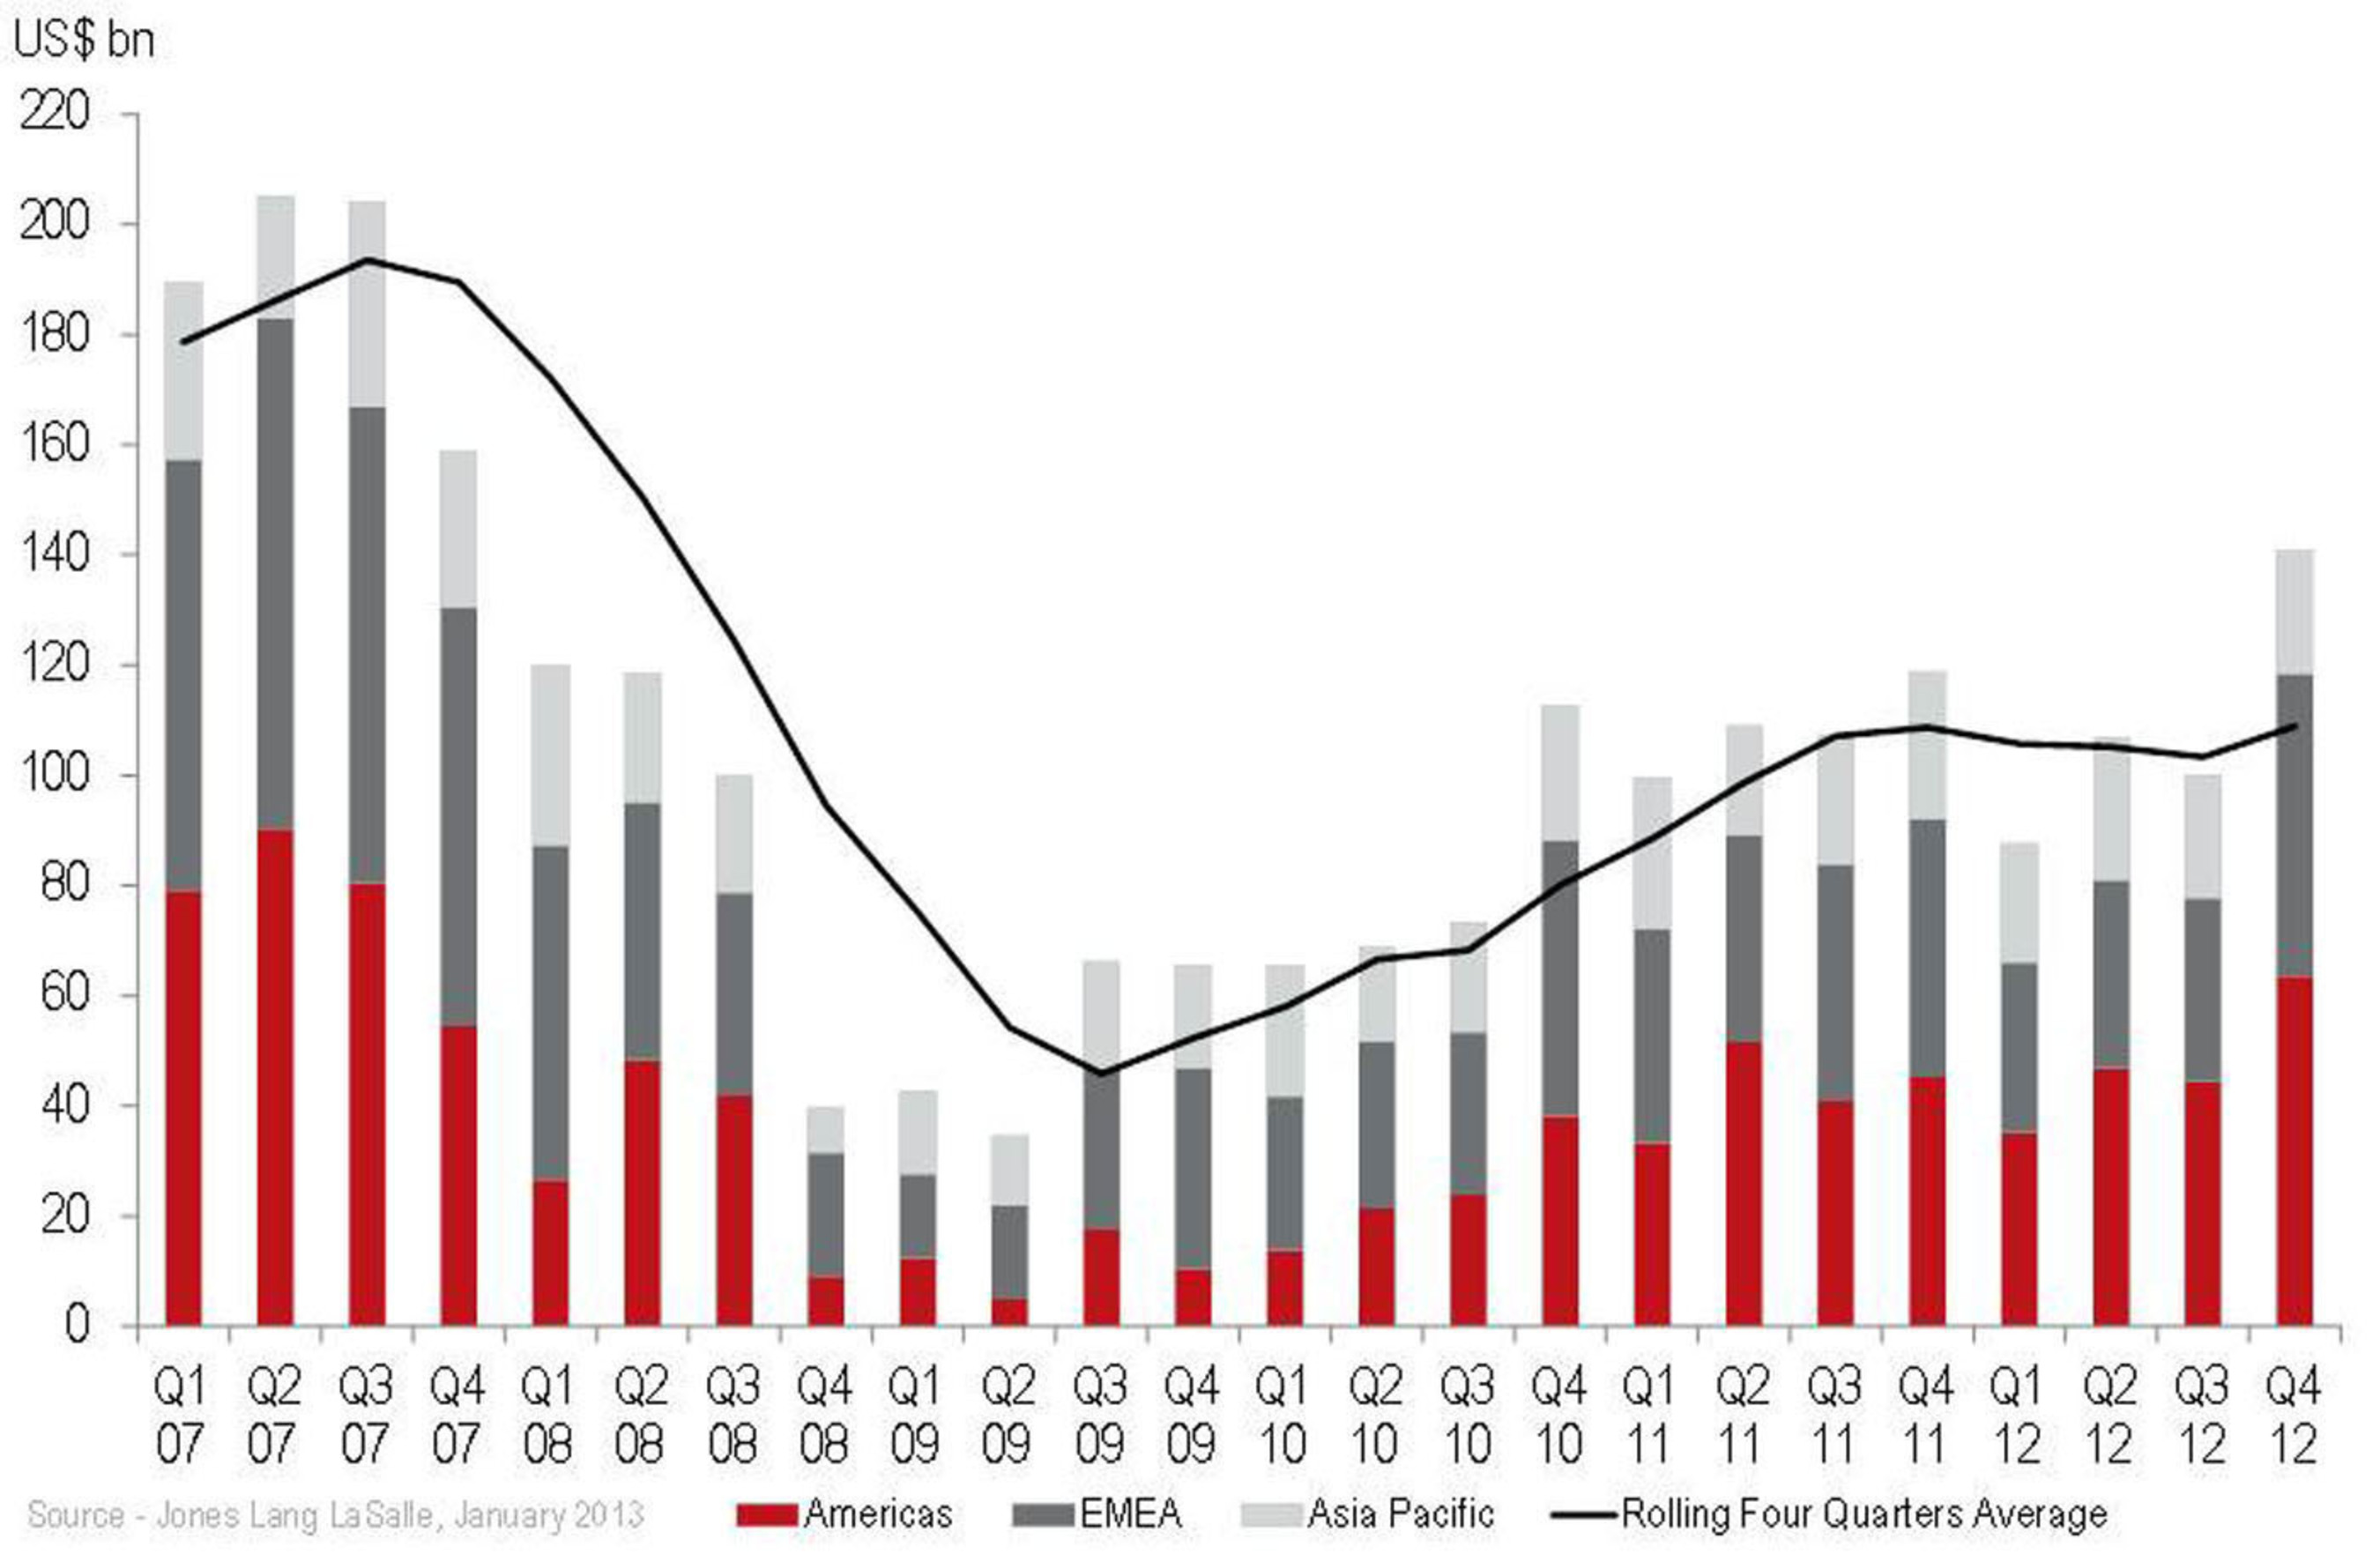 Exceptional 4Q pushes Global Commercial Real Estate Investment Volumes to $436B in 2012